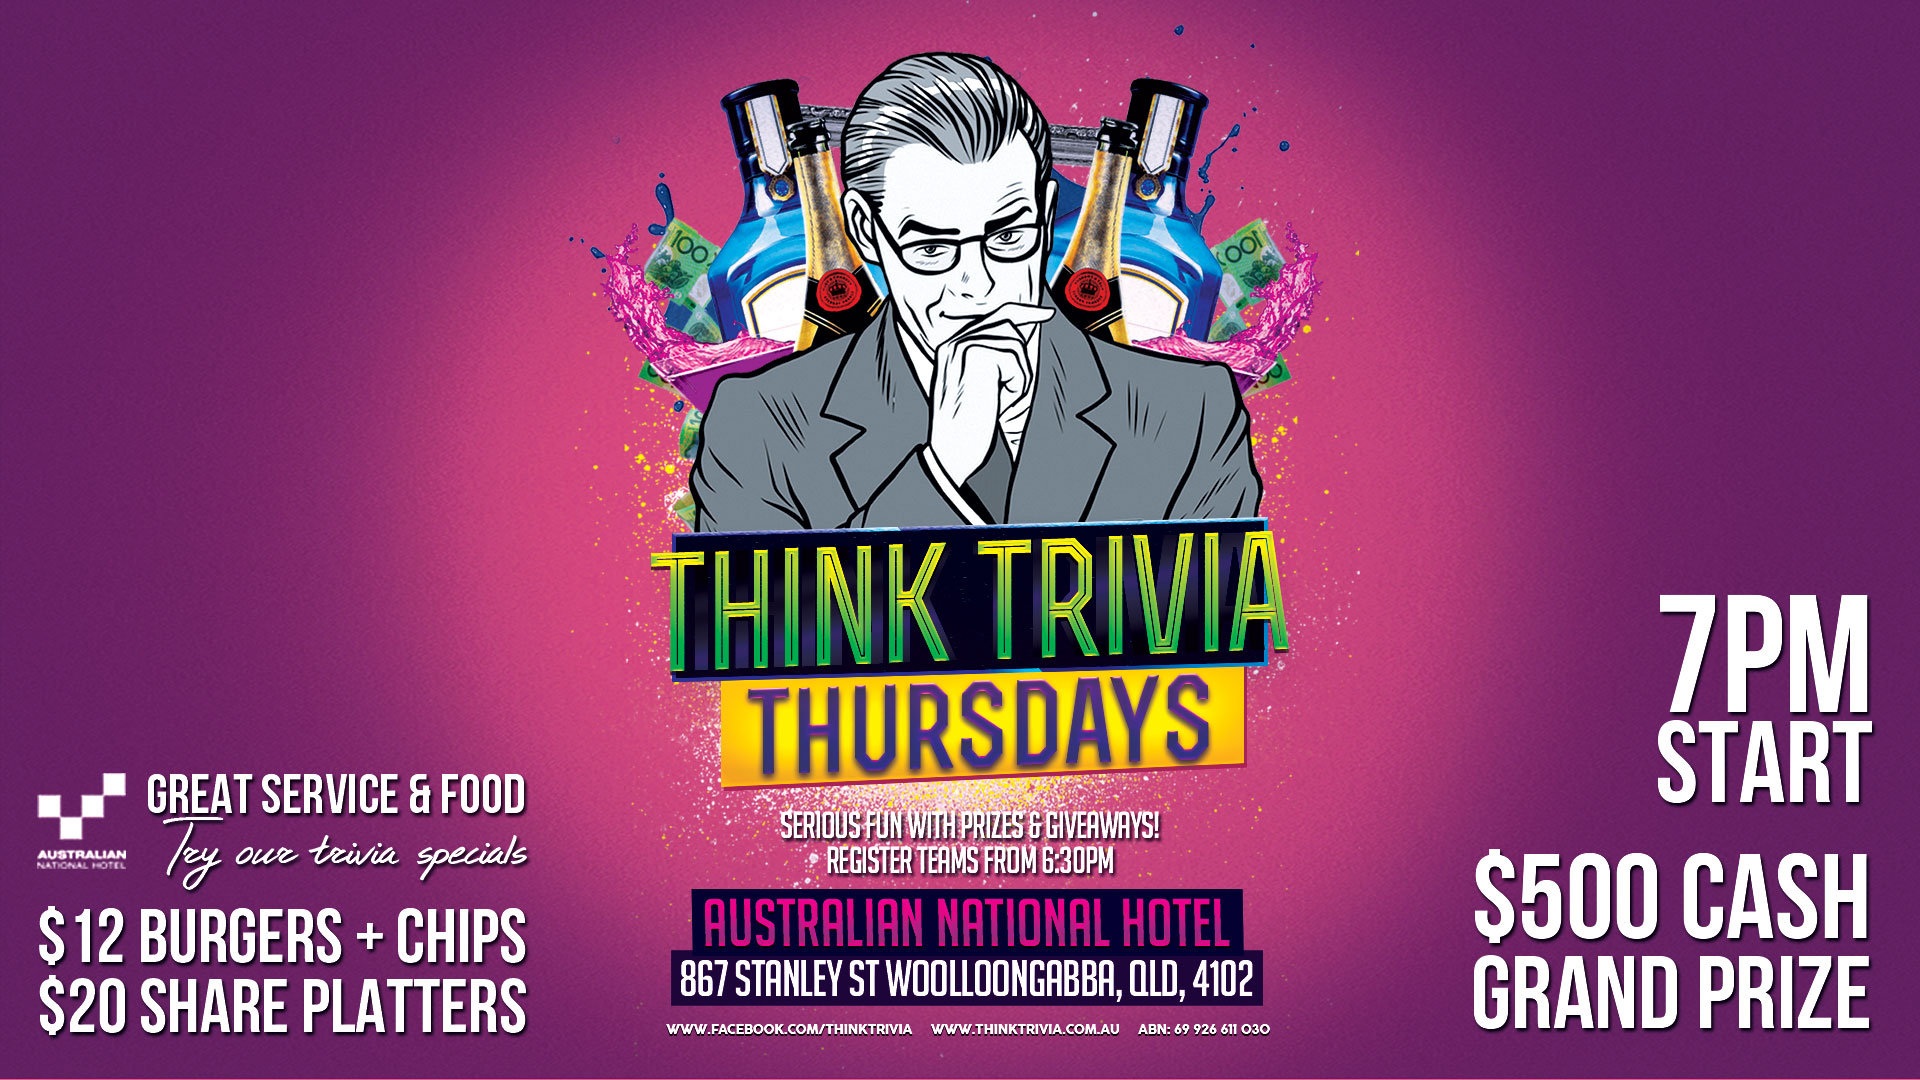 Australian National Hotel - Woolloongabba - Thursday Trivia @ Australian National Hotel | Woolloongabba | Queensland | Australia